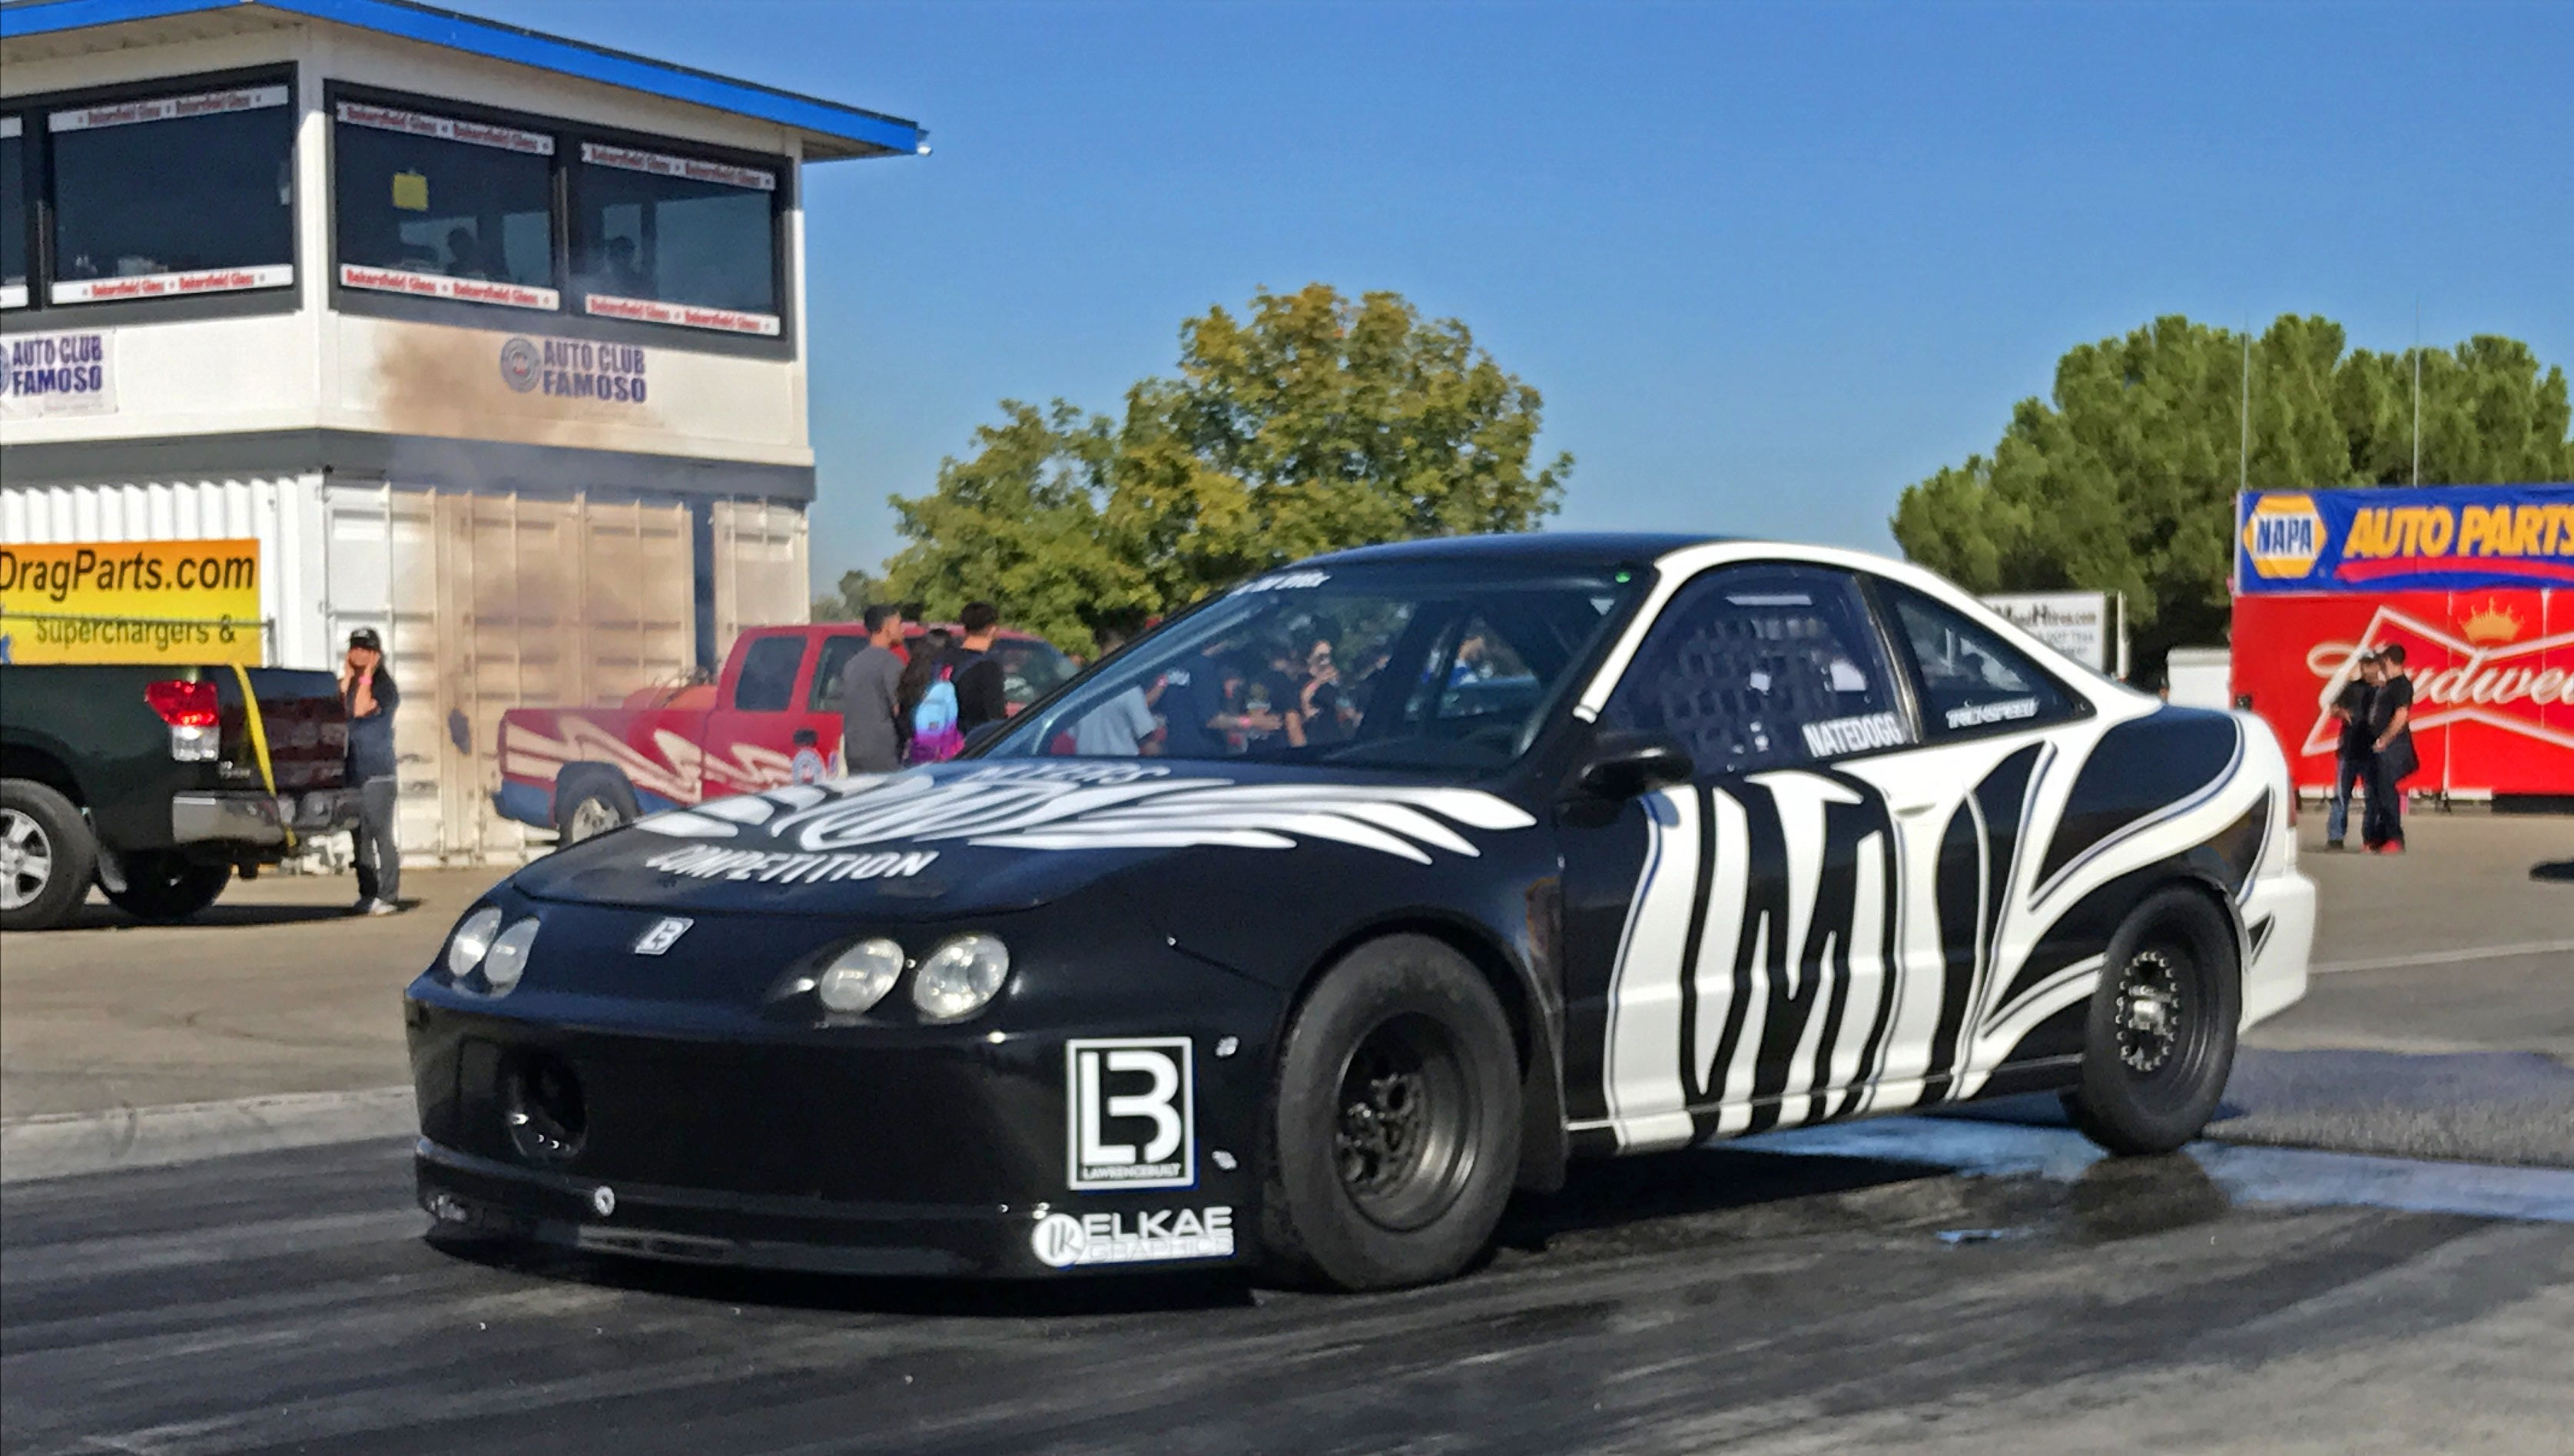 Myers Competition K-series Drag racer